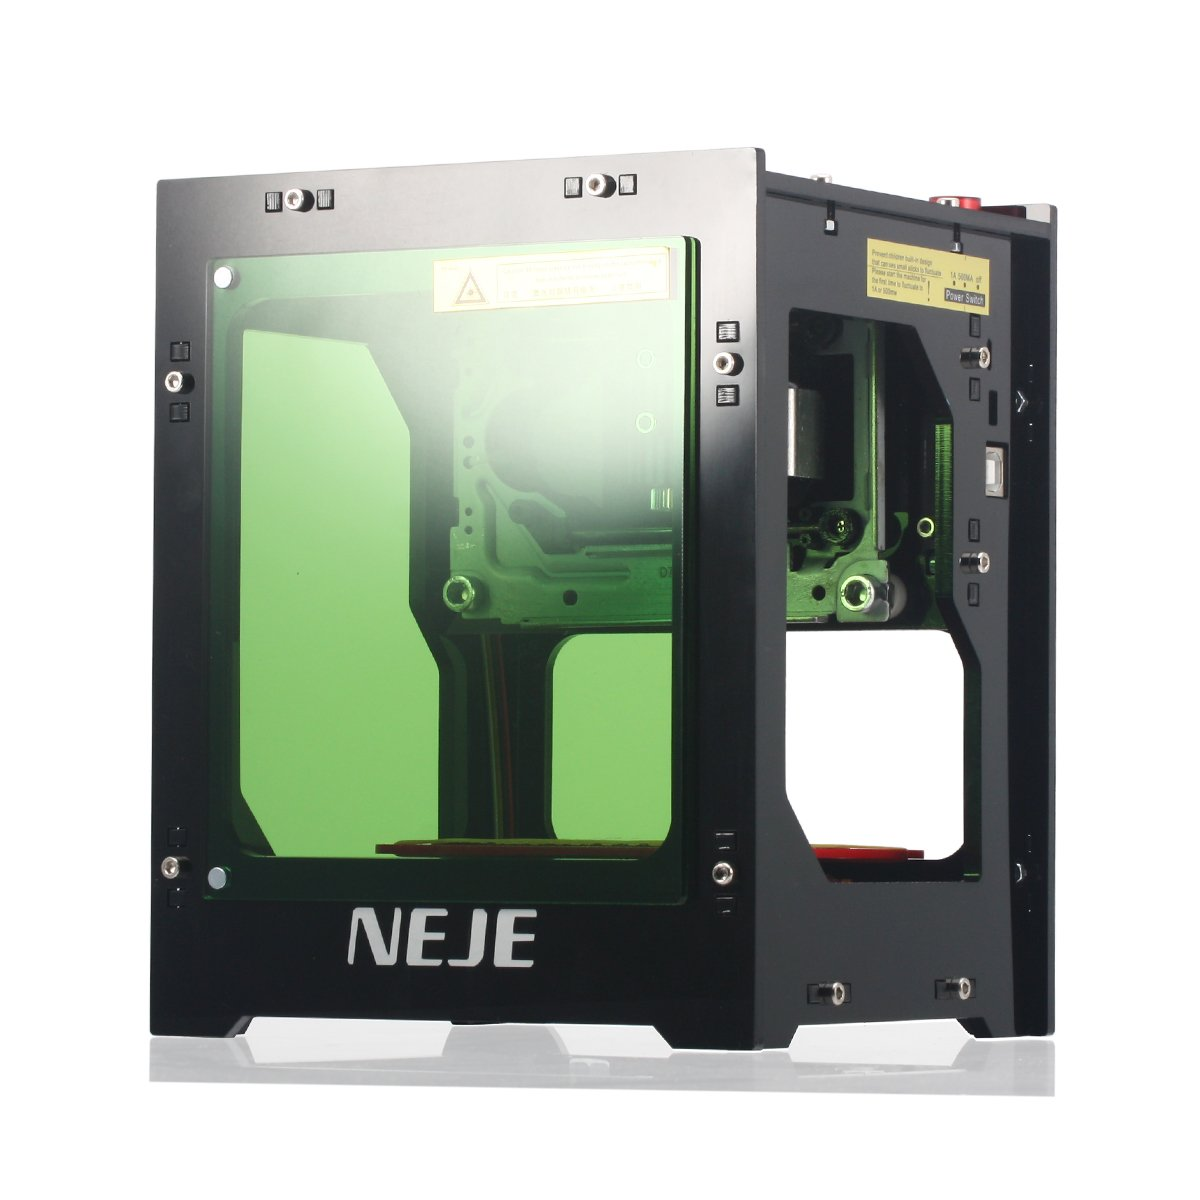 NEJE Laser Engraver Printer 1000mW 490x490 Pixel USB Mini Engraving Machine Dual USB Socket Acrylic Filter with Magnetic Suction One-Click Operation for Wood Paper DIY Design